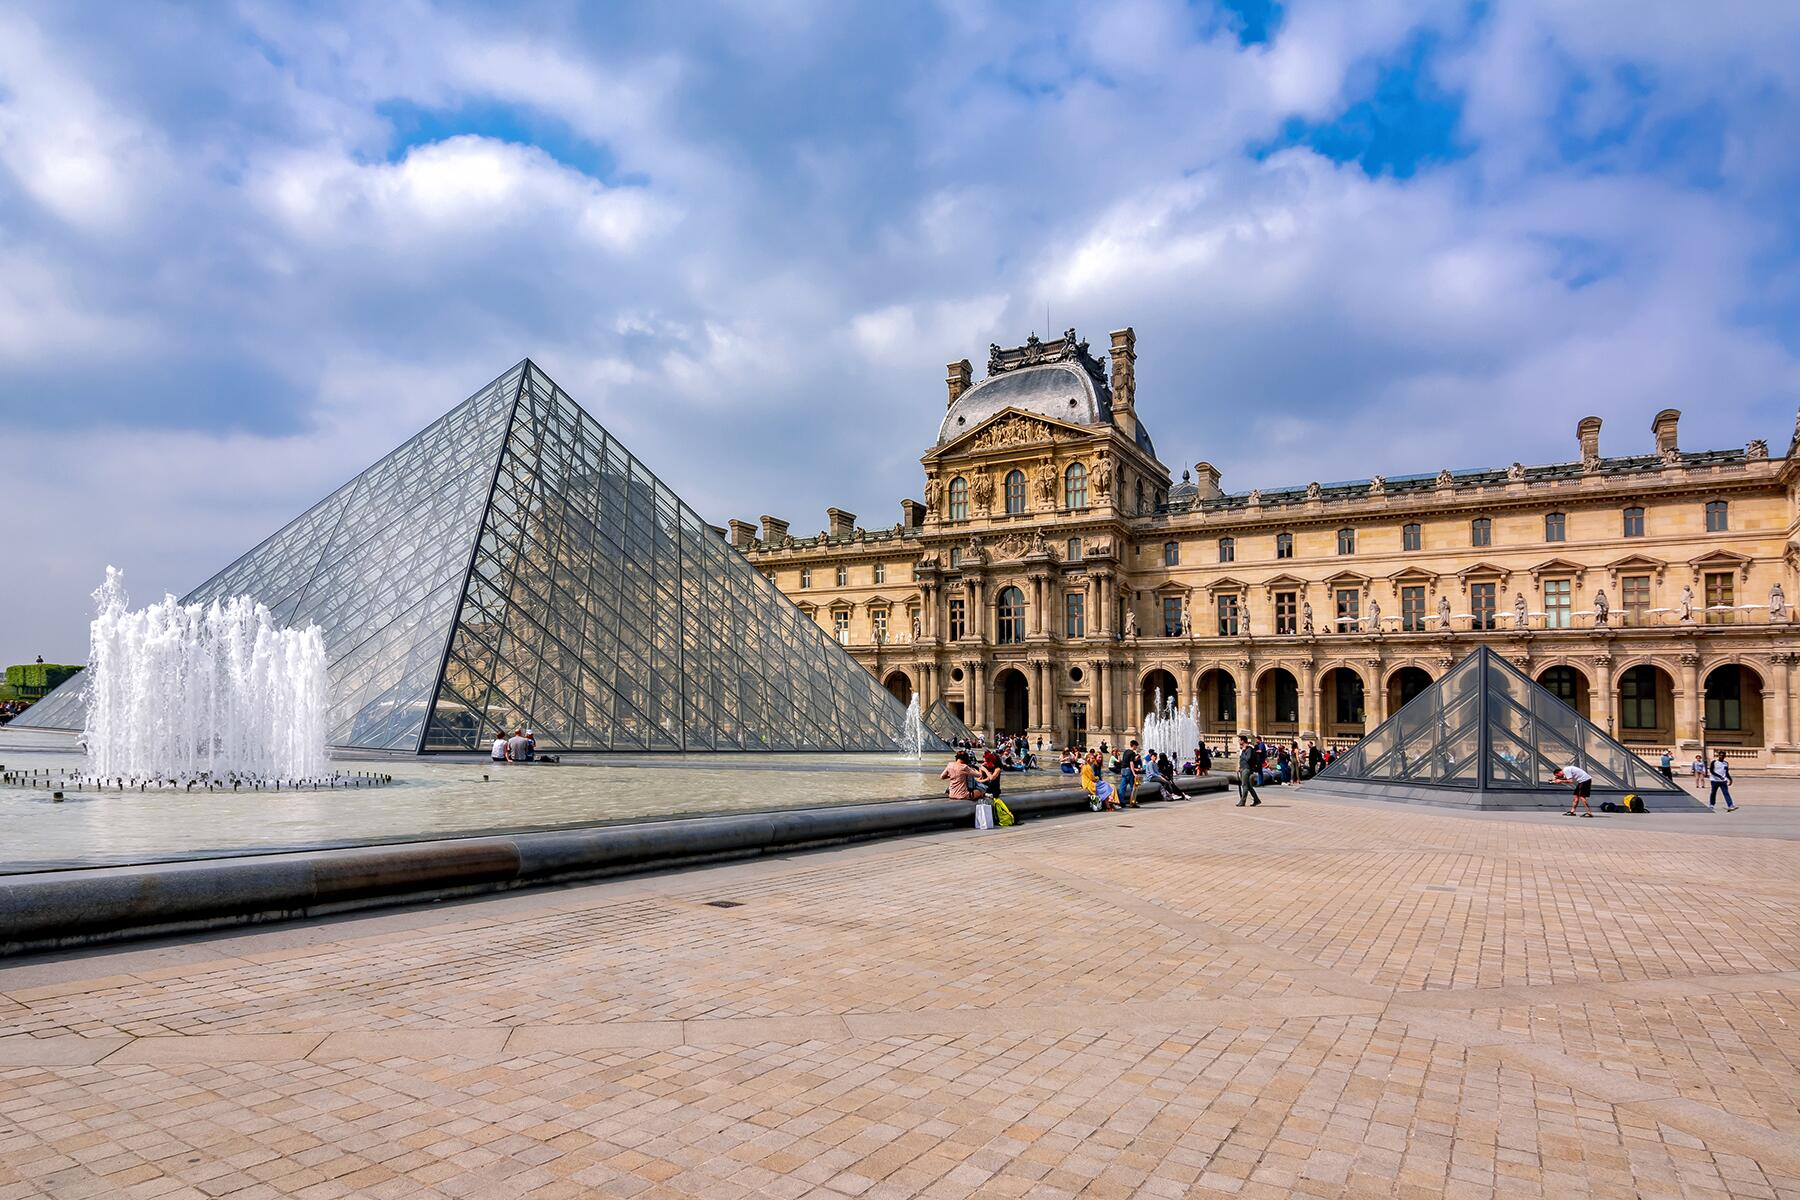 fodors_travel_guide_louvre.jpg